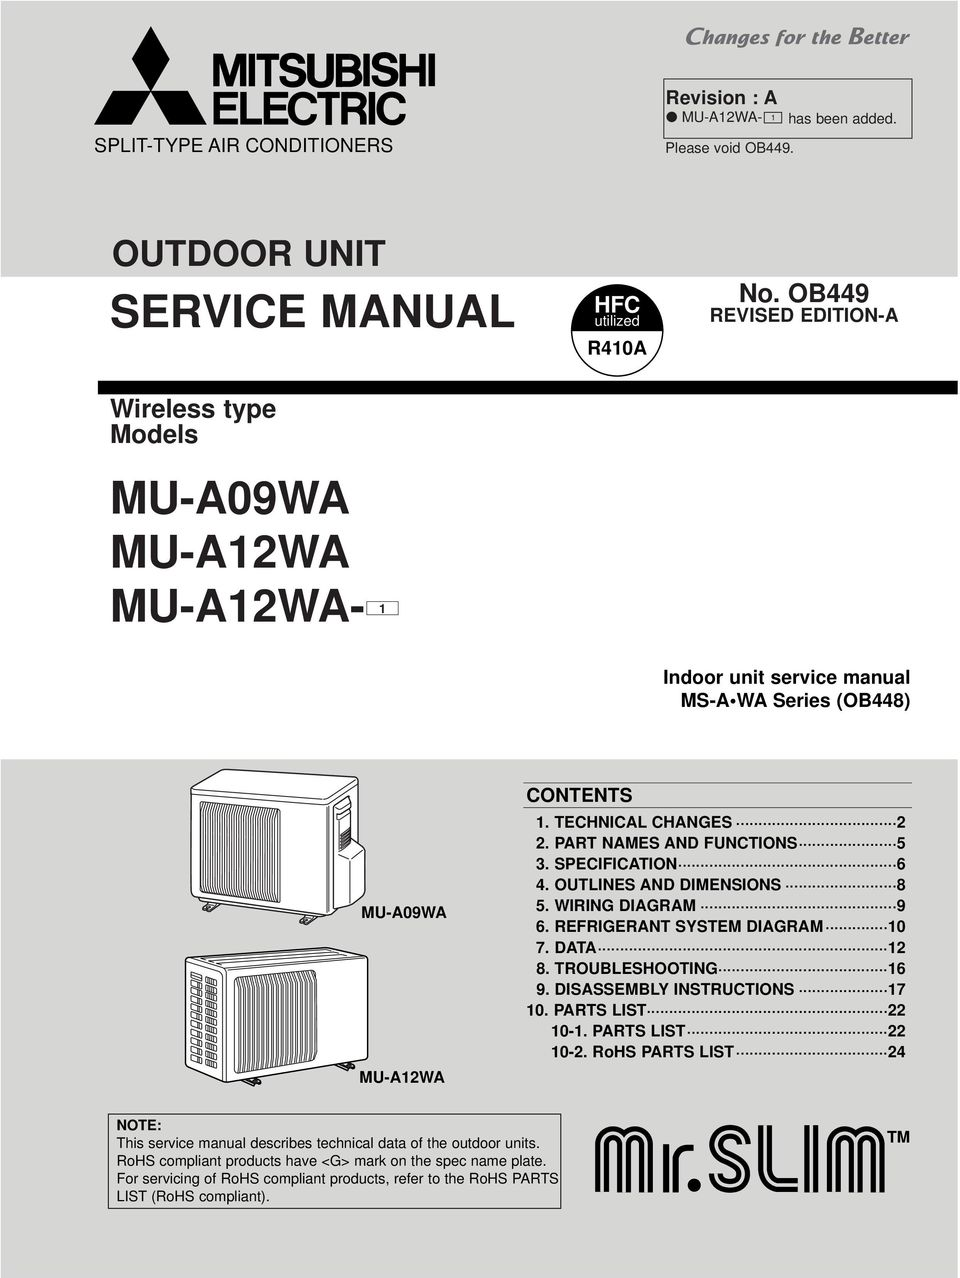 Service Manual Mu A09wa A12wa 1 Outdoor Unit No Ob449 Wiring Diagrams Outlines And Dimensions 8 5 Wirin Diaram 9 6 Refrierant System 0 7